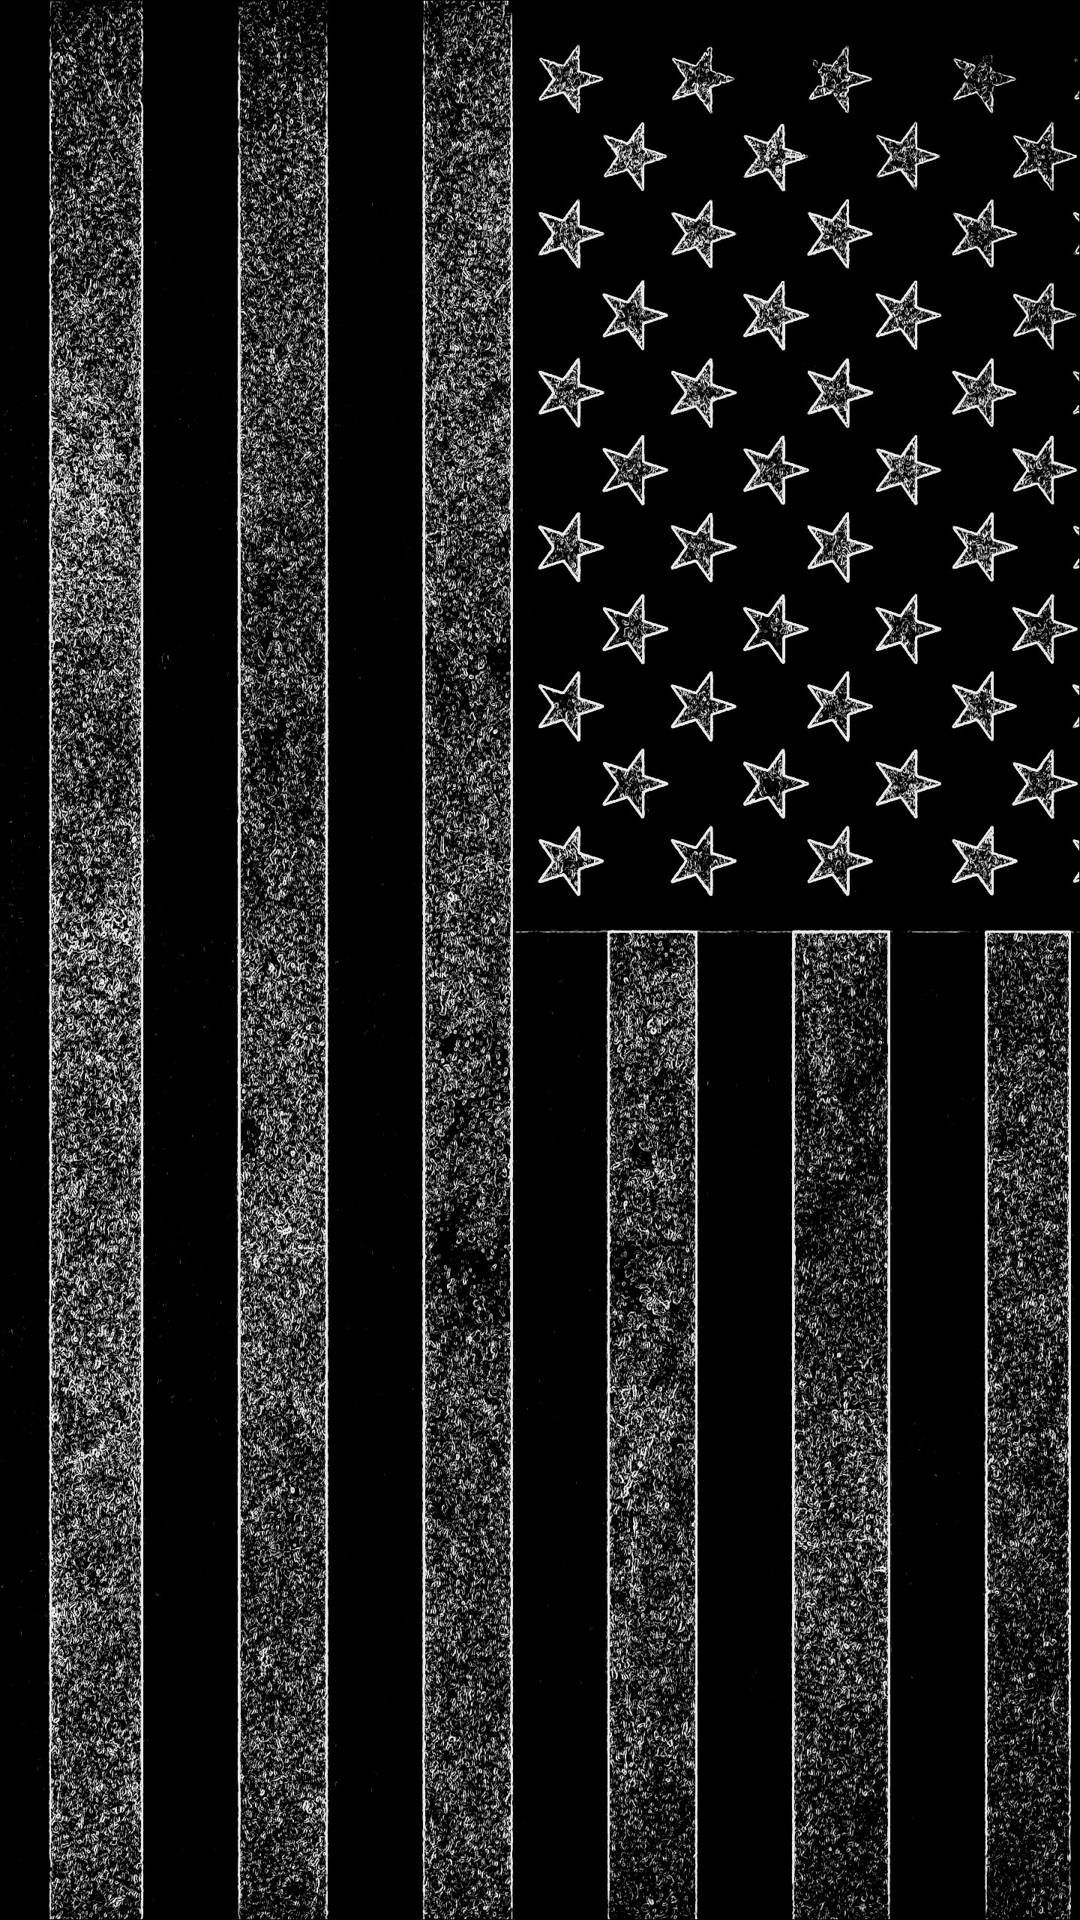 Dark American Flag Iphone Wallpaper Darkiphonewallpaper In 2020